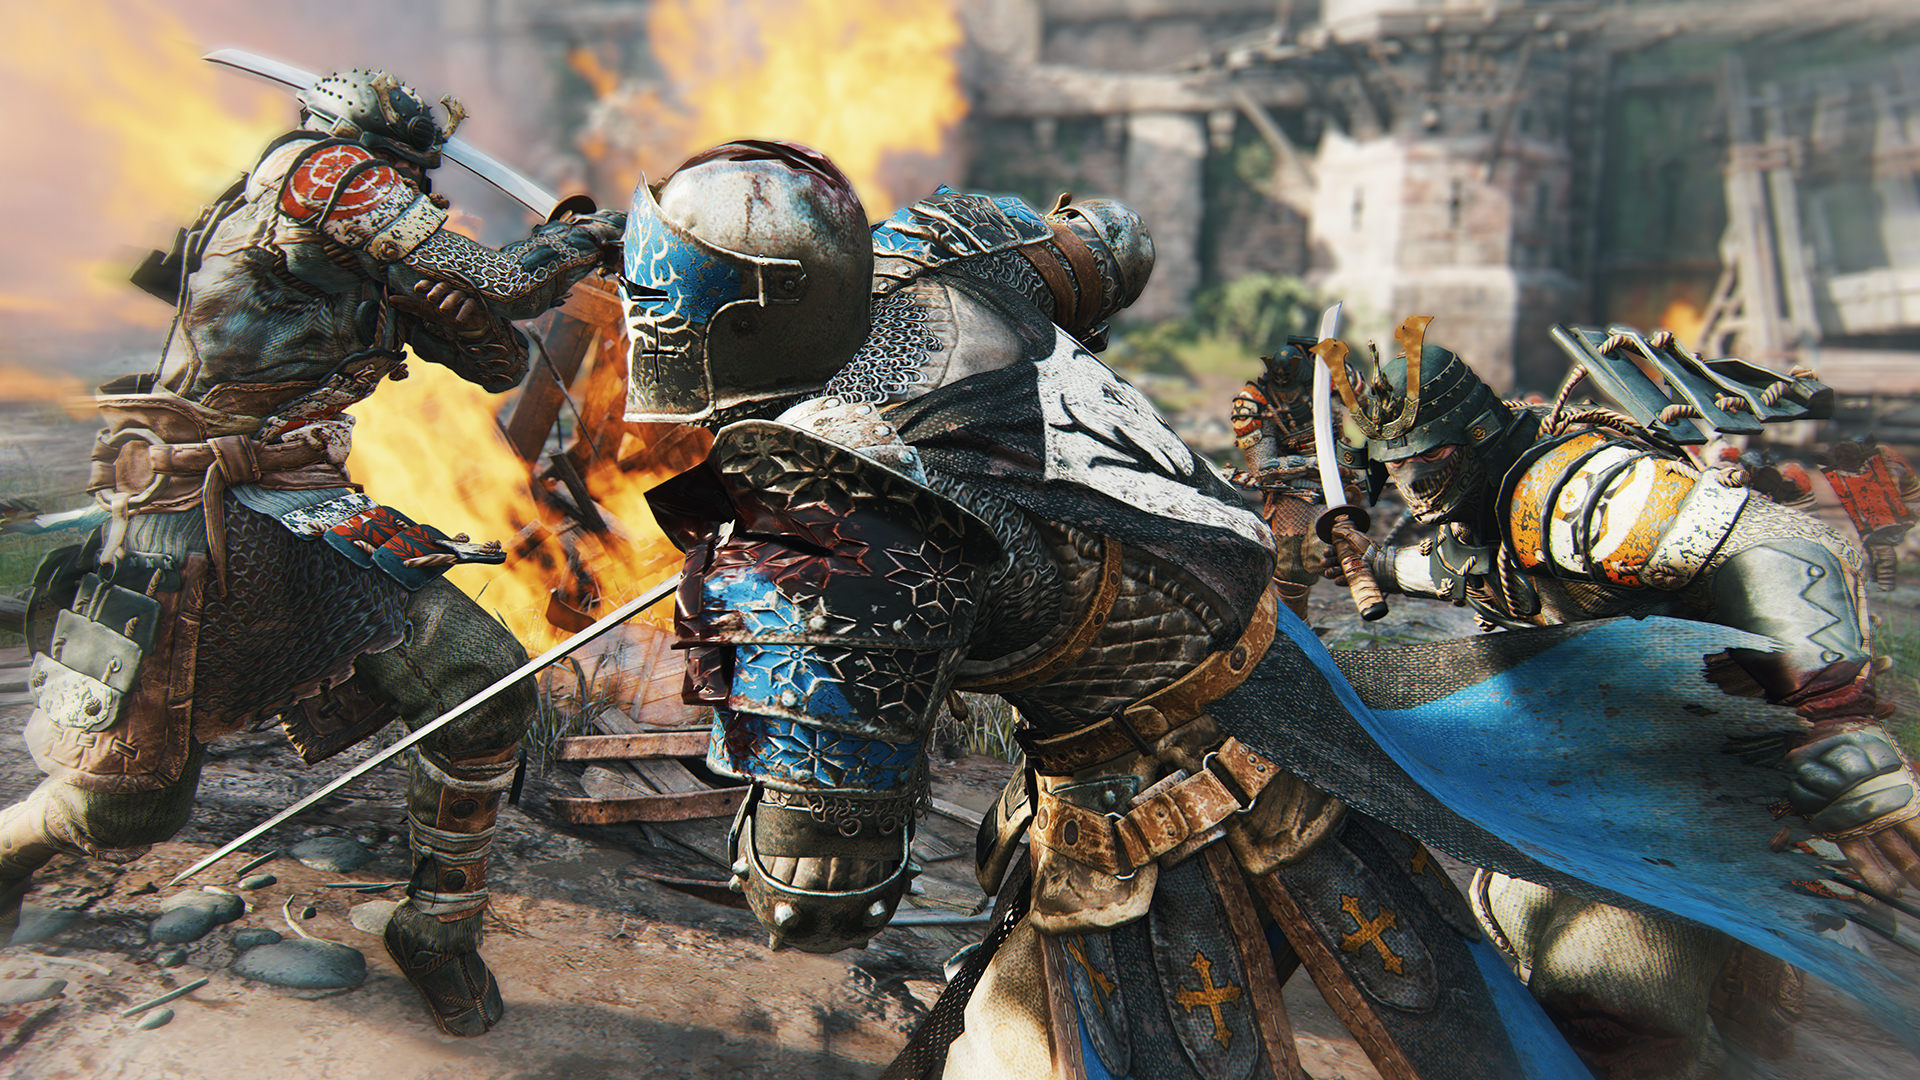 For_Honor_Screen_Harrowgate_SamuraisAttackWarden_E3_150615_4pmPST_1434397100